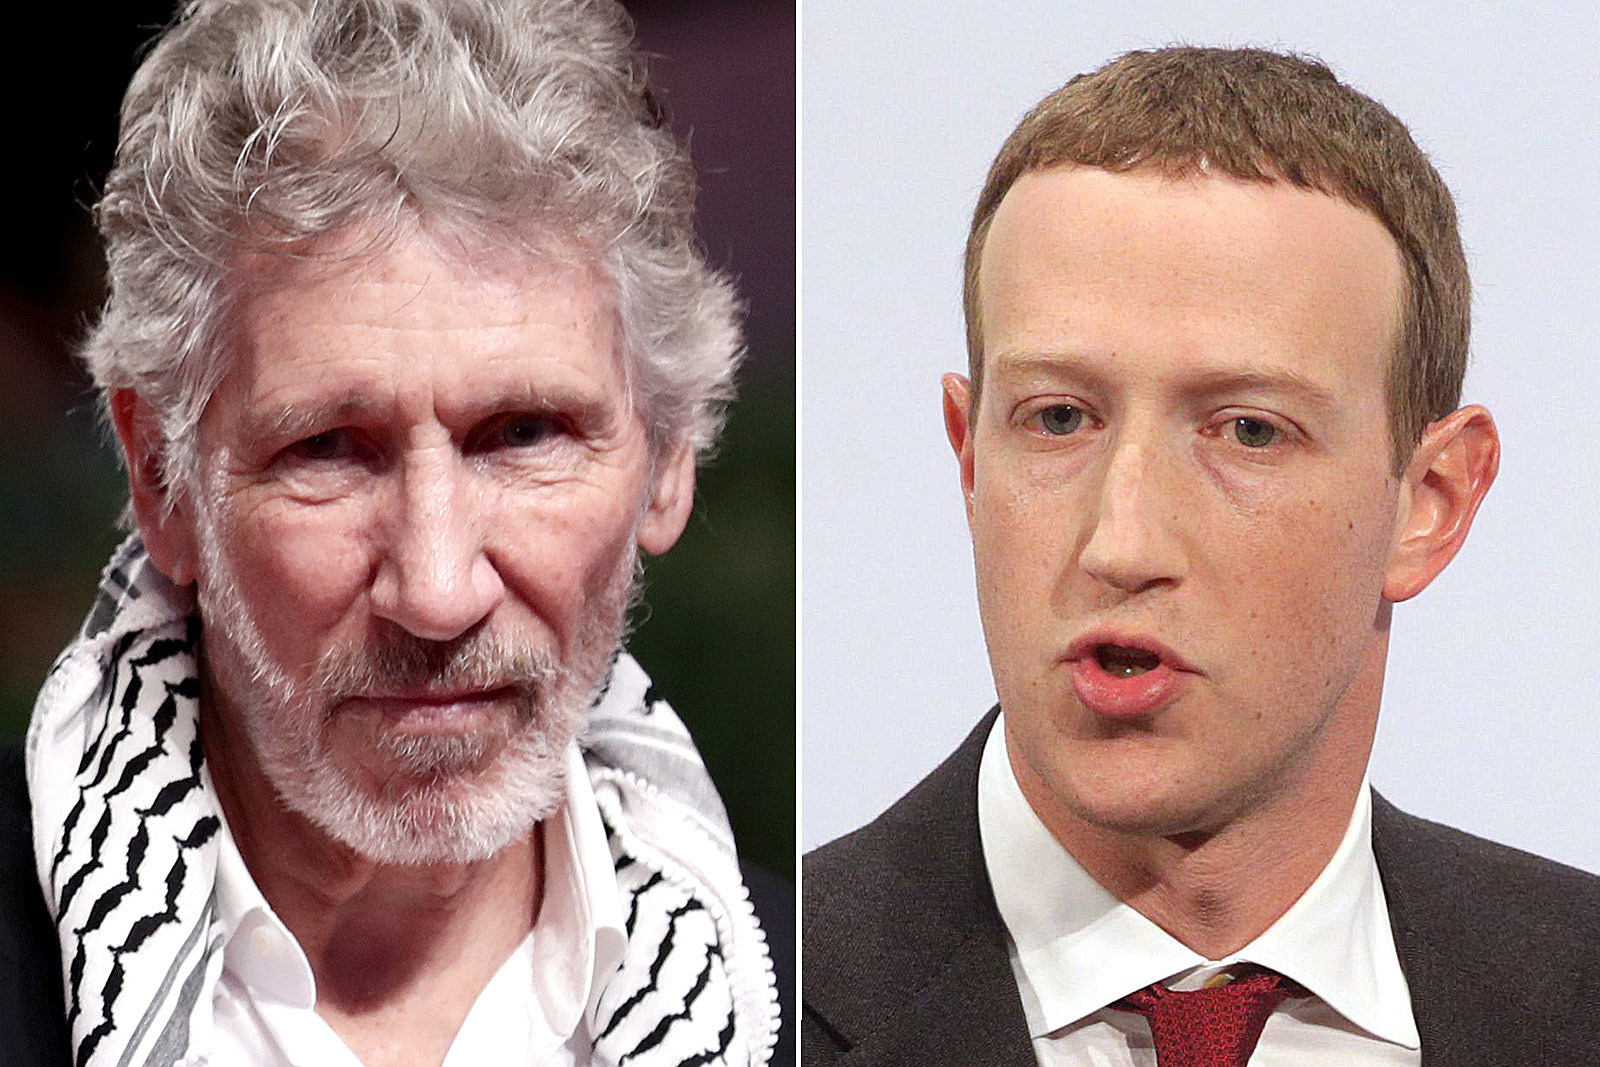 Angry Roger Waters Rejected 'Huge' Deal From Facebook